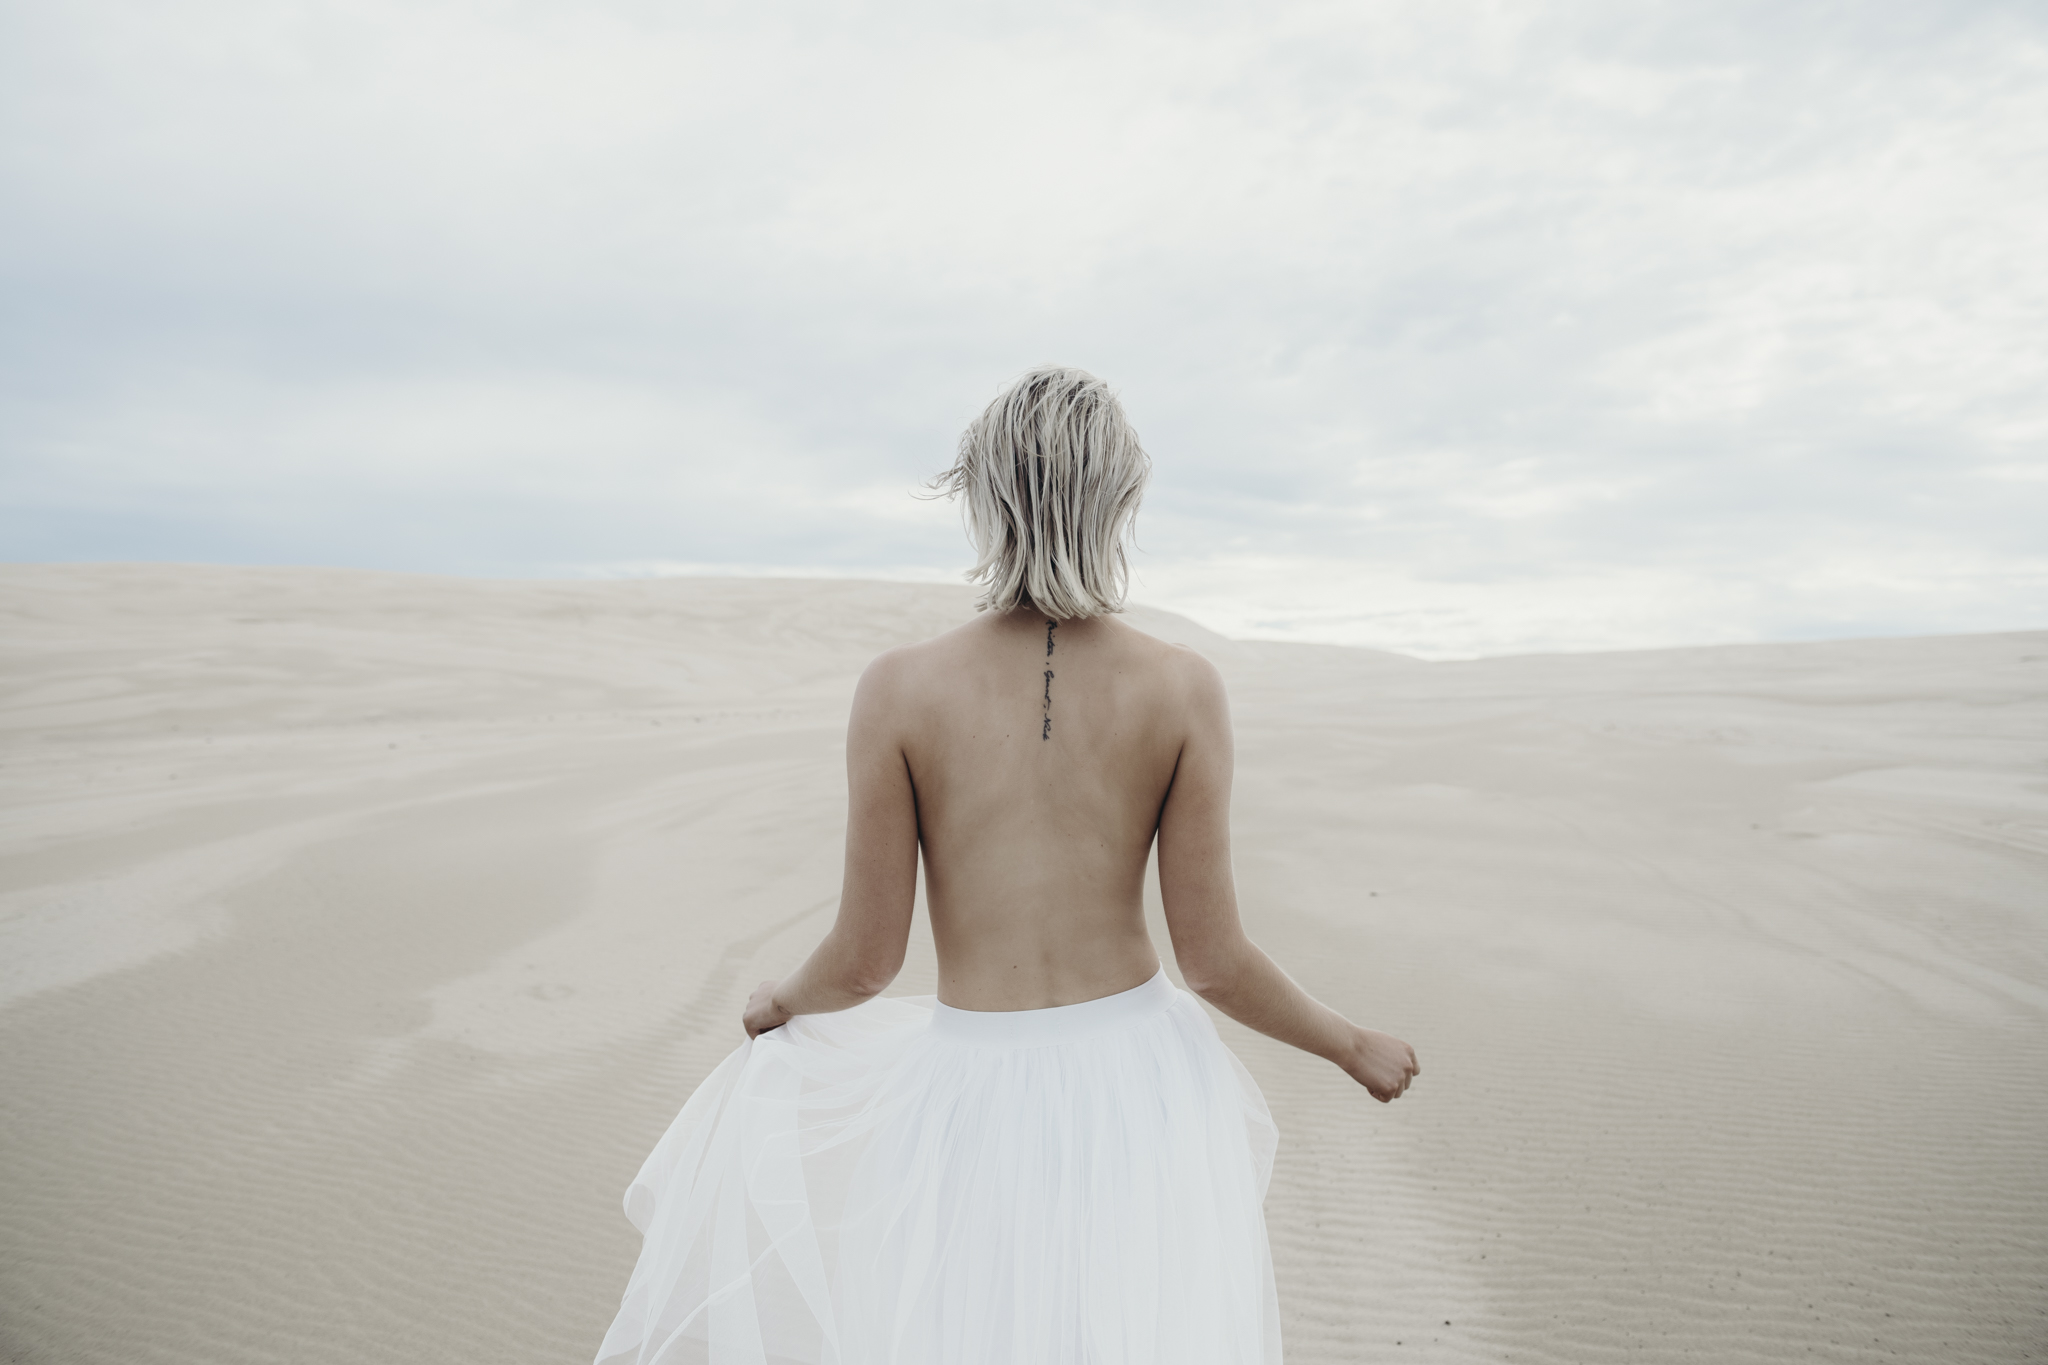 Follow her through the sand dunes and unearth her story.